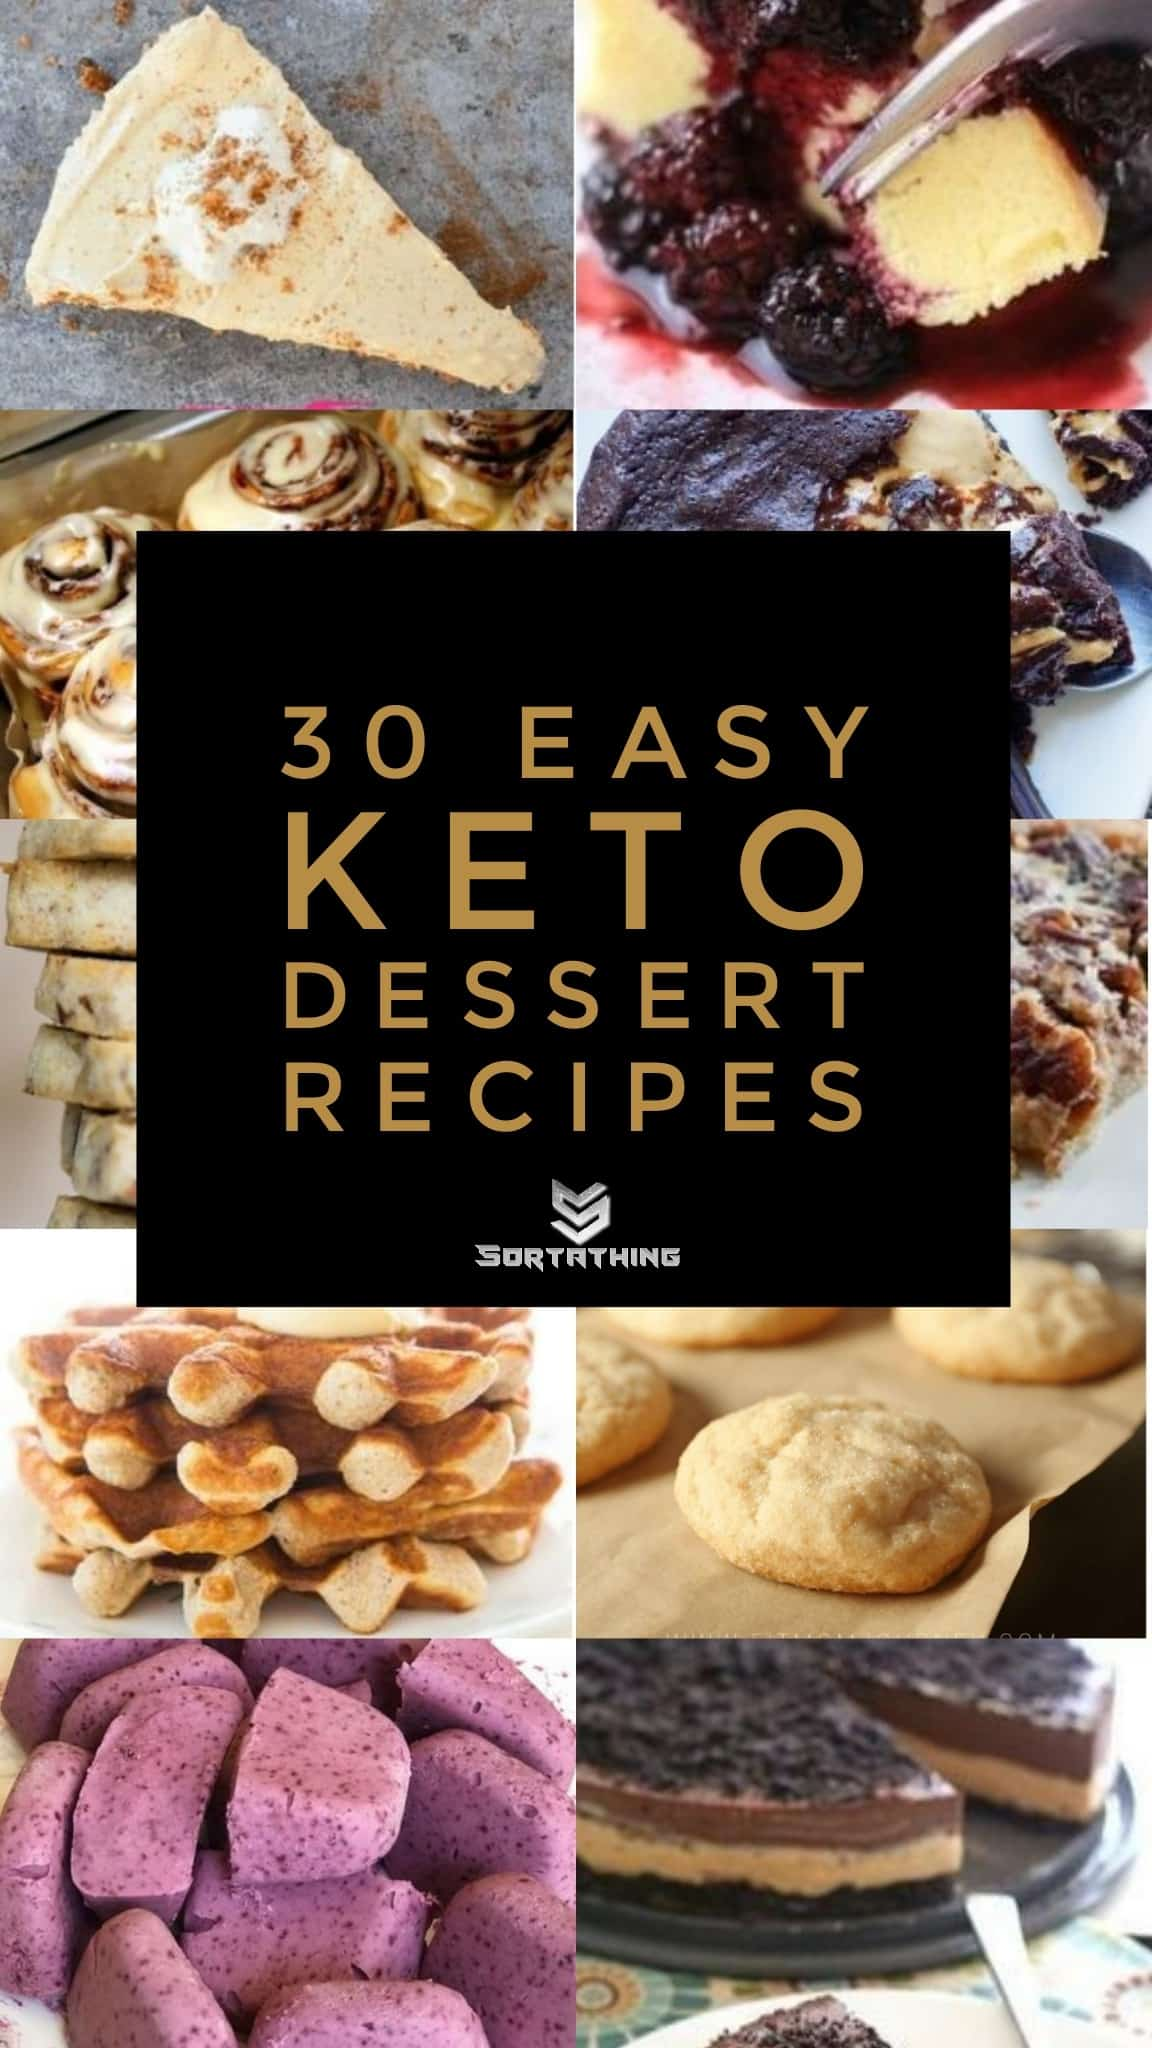 30 Easy Keto Dessert Recipes